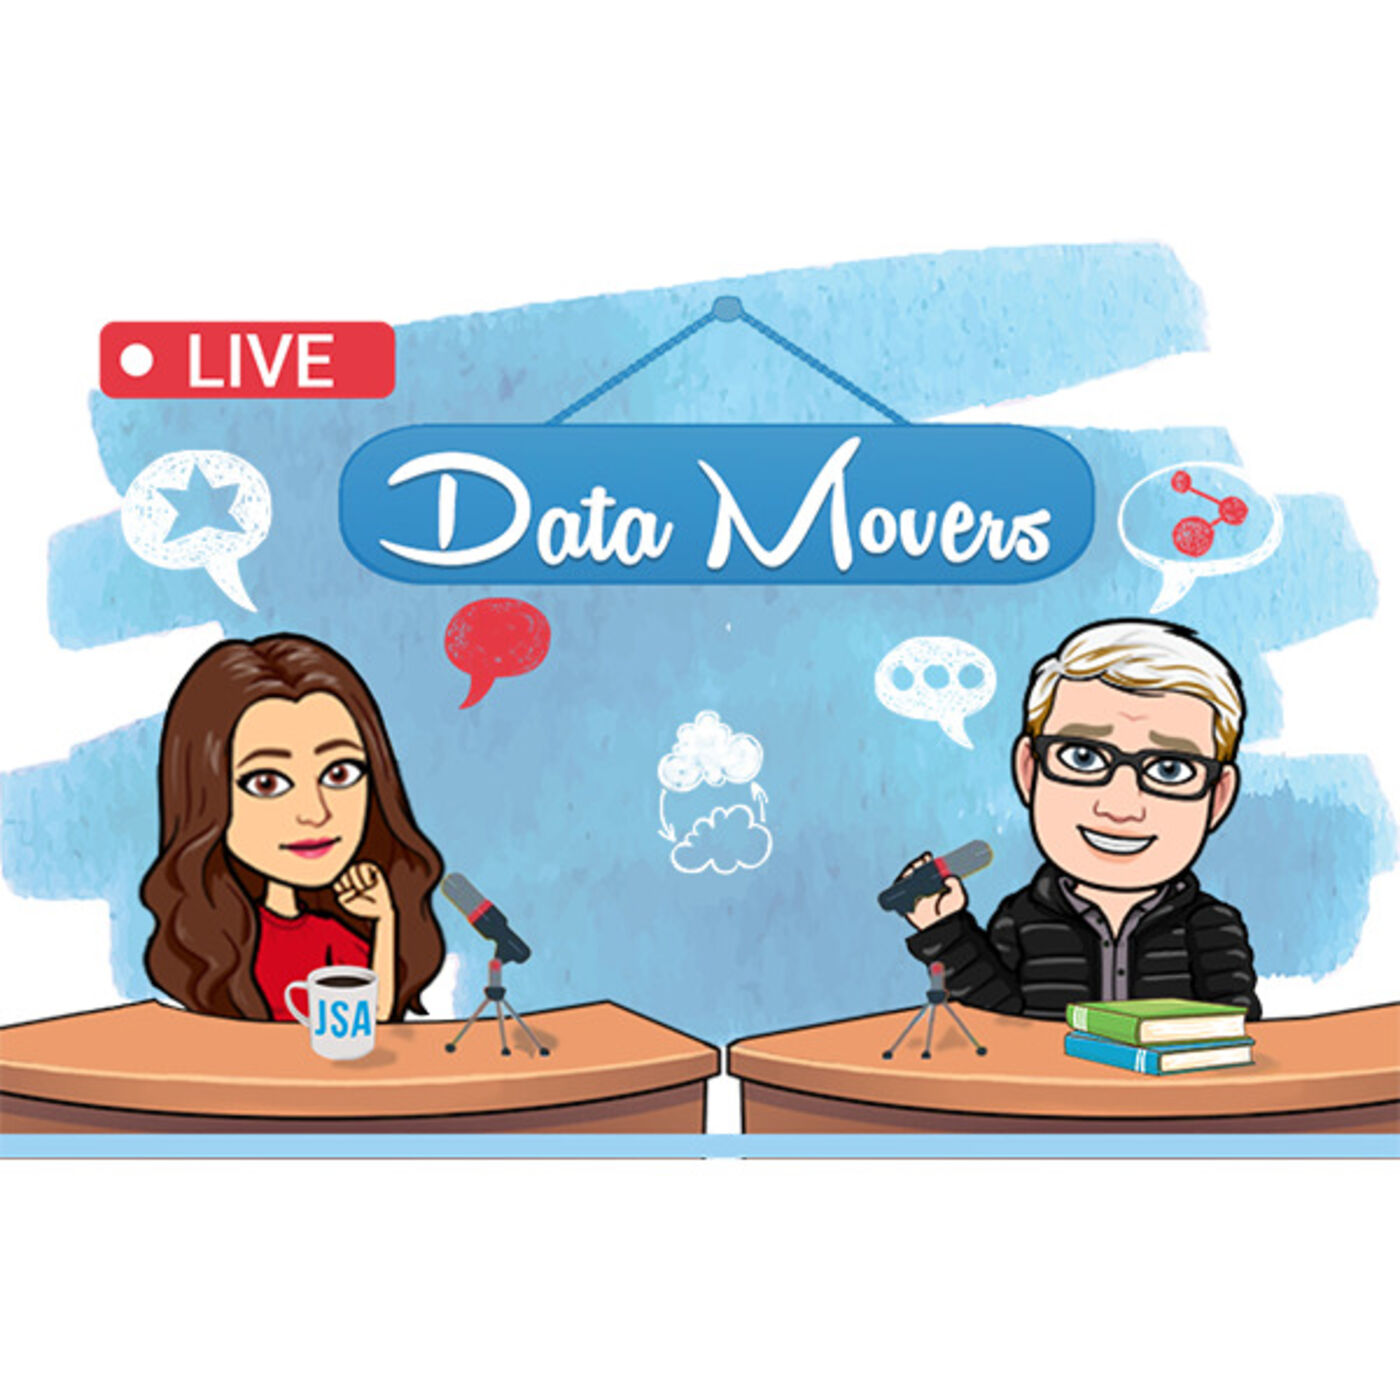 Data Movers Podcast with Todd Cushing, President of 1623 Farnam: Interconnection, Innovation, and why Omaha (Besides Warren Buffett's Favorite Ice Cream)